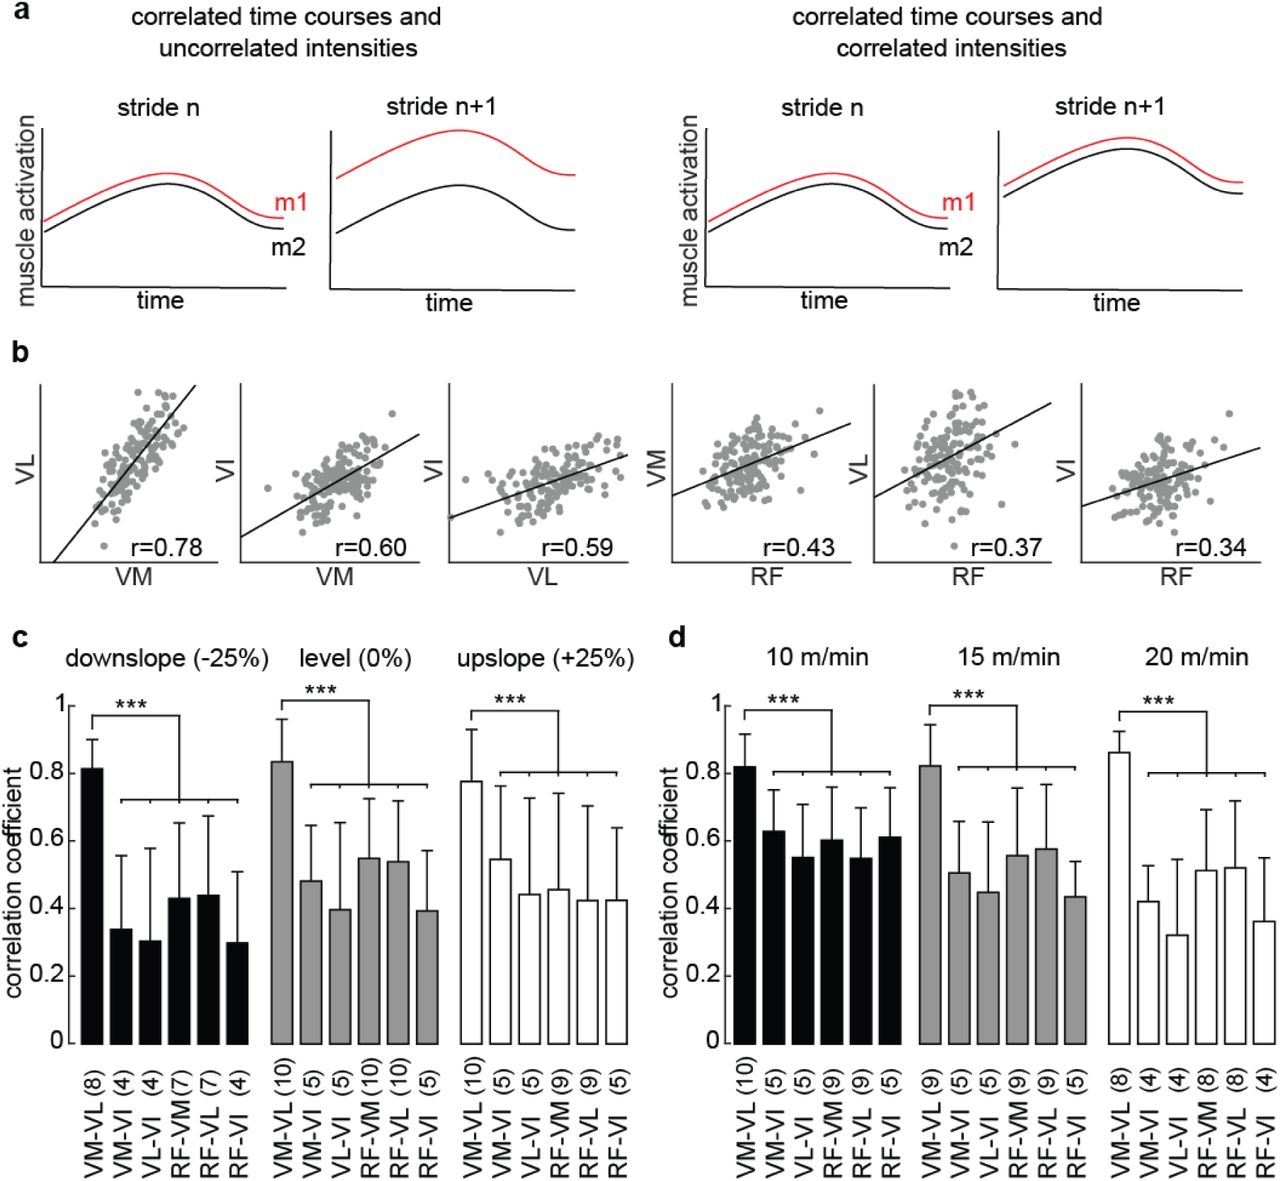 Coordination amongst quadriceps muscles suggests neural